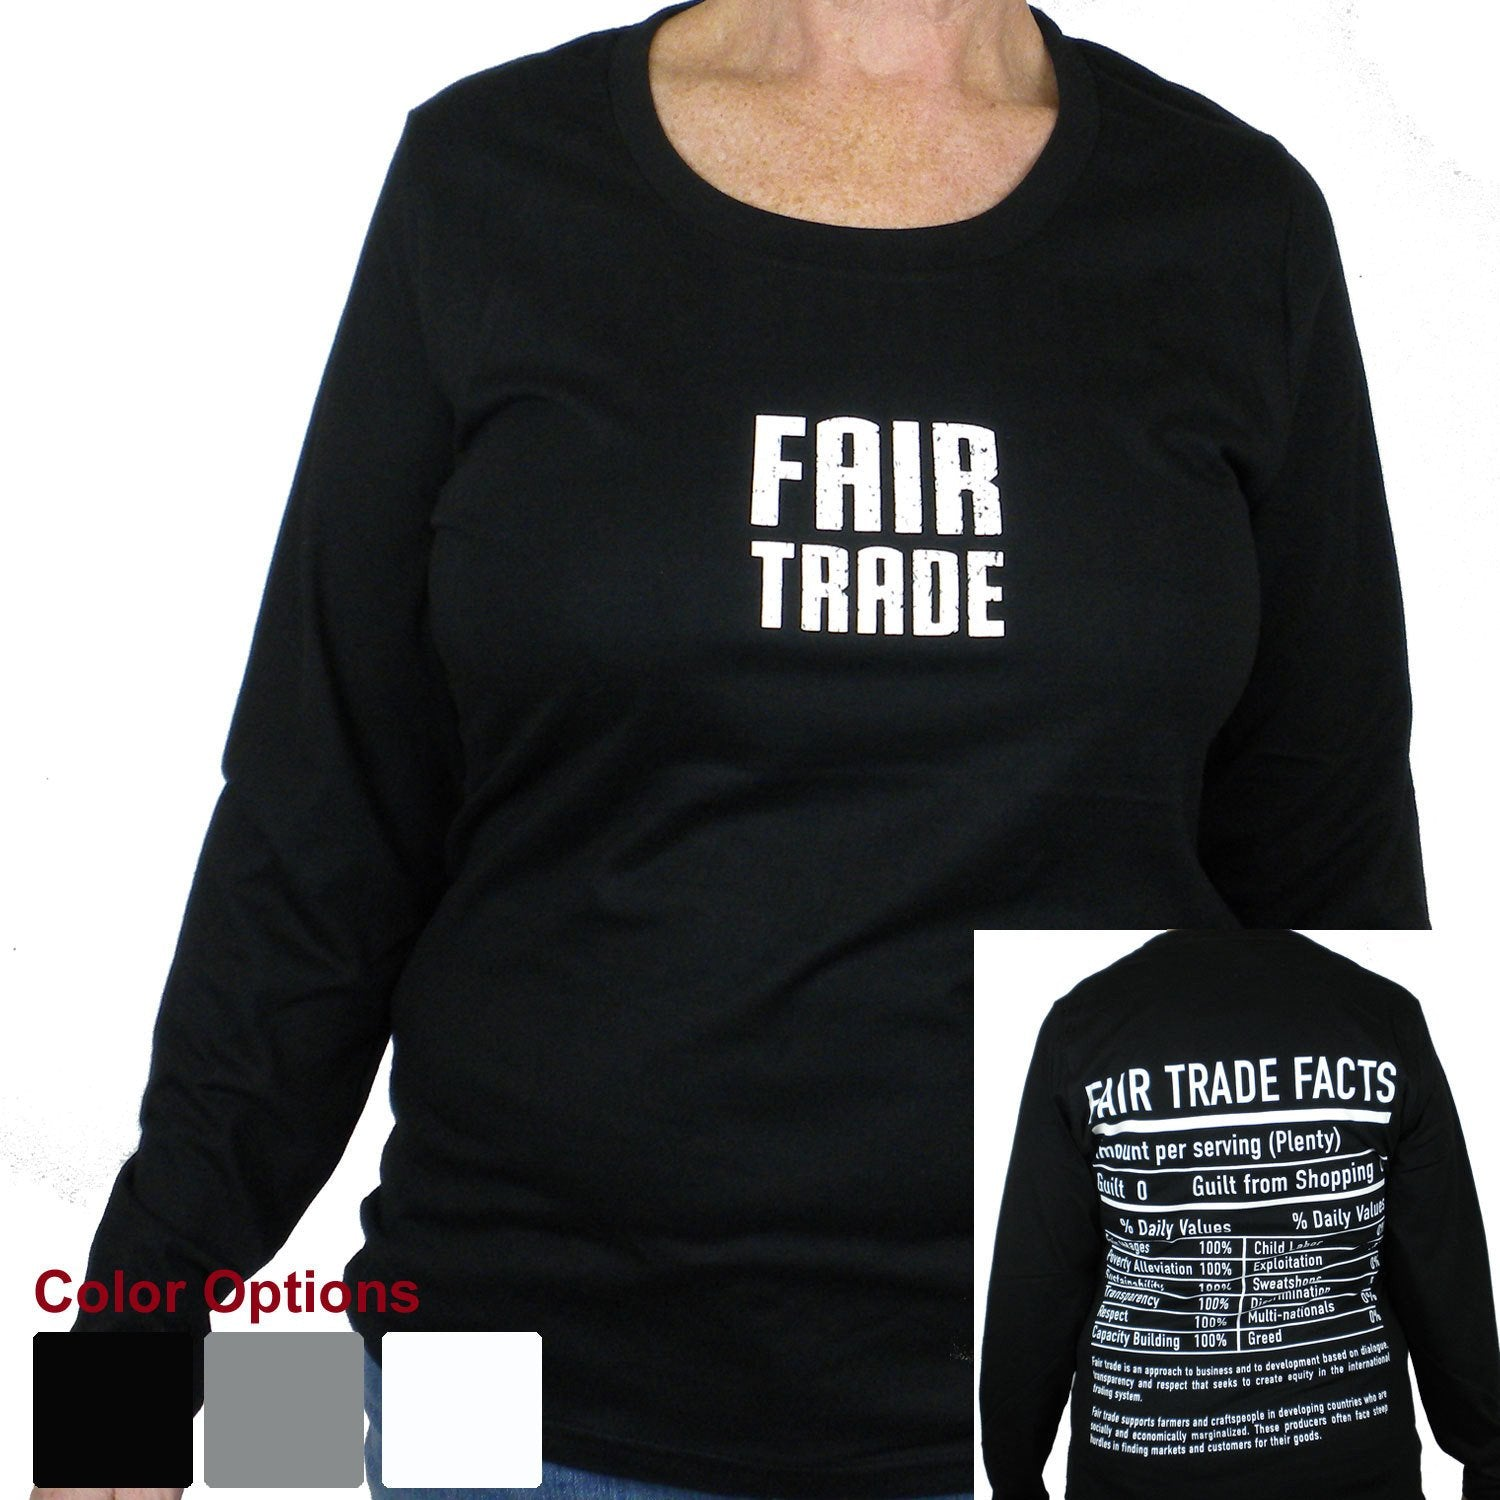 Gray Tee Shirt Long Sleeve Small FT Front - FT Facts on Back - Small